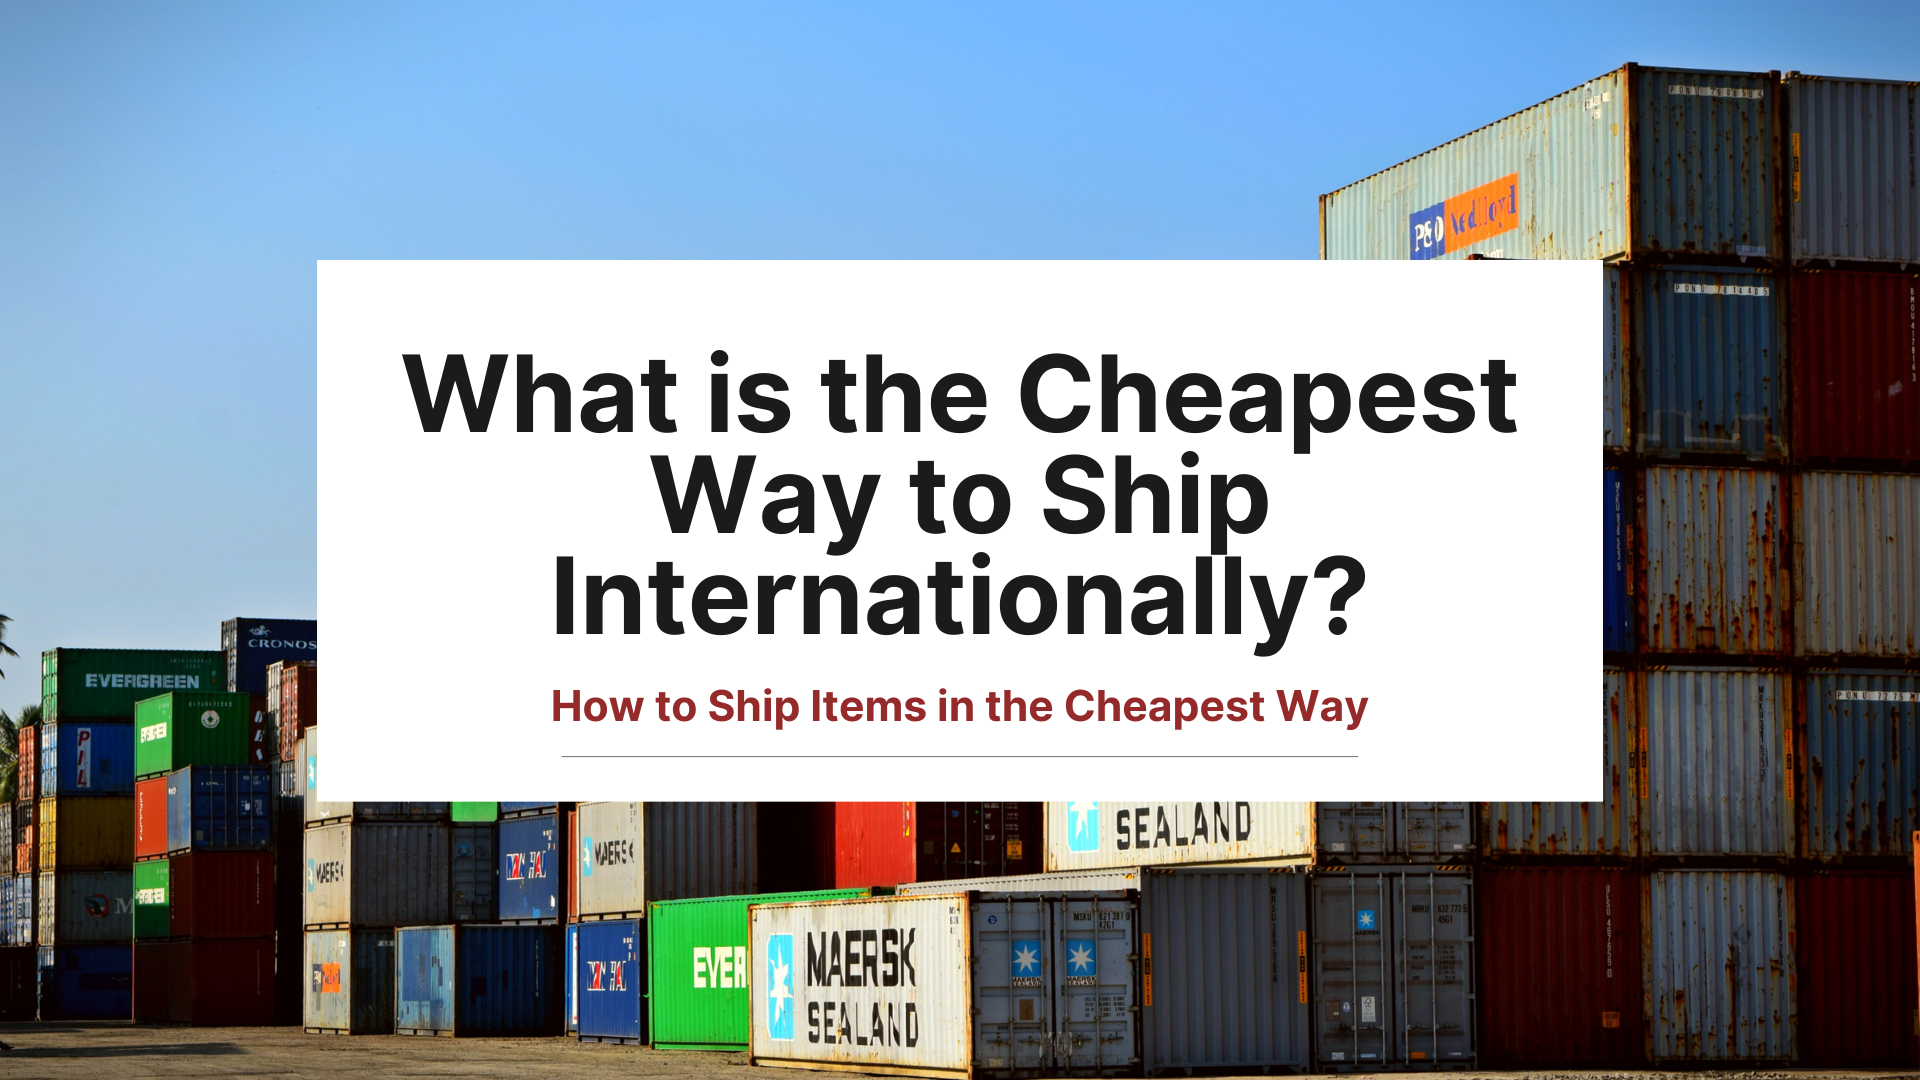 What is the Cheapest Way to Ship Internationally